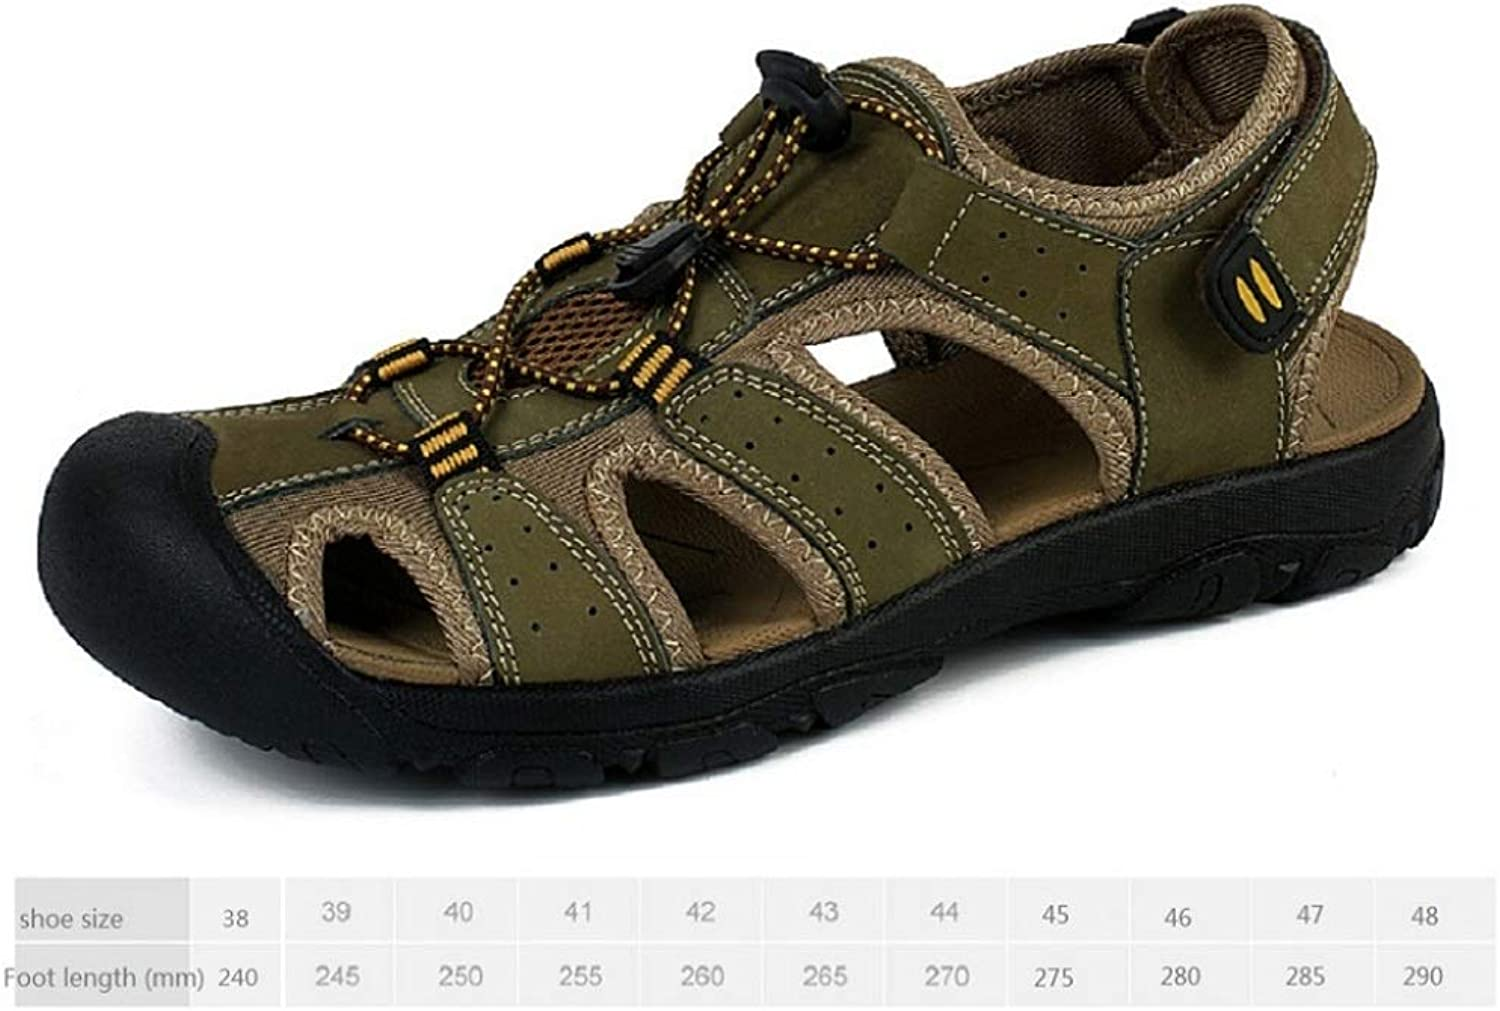 LZK Summer leather sandals men's outdoor beach shoes large size toe sandals anti-impact predection toe anti-slip wear null